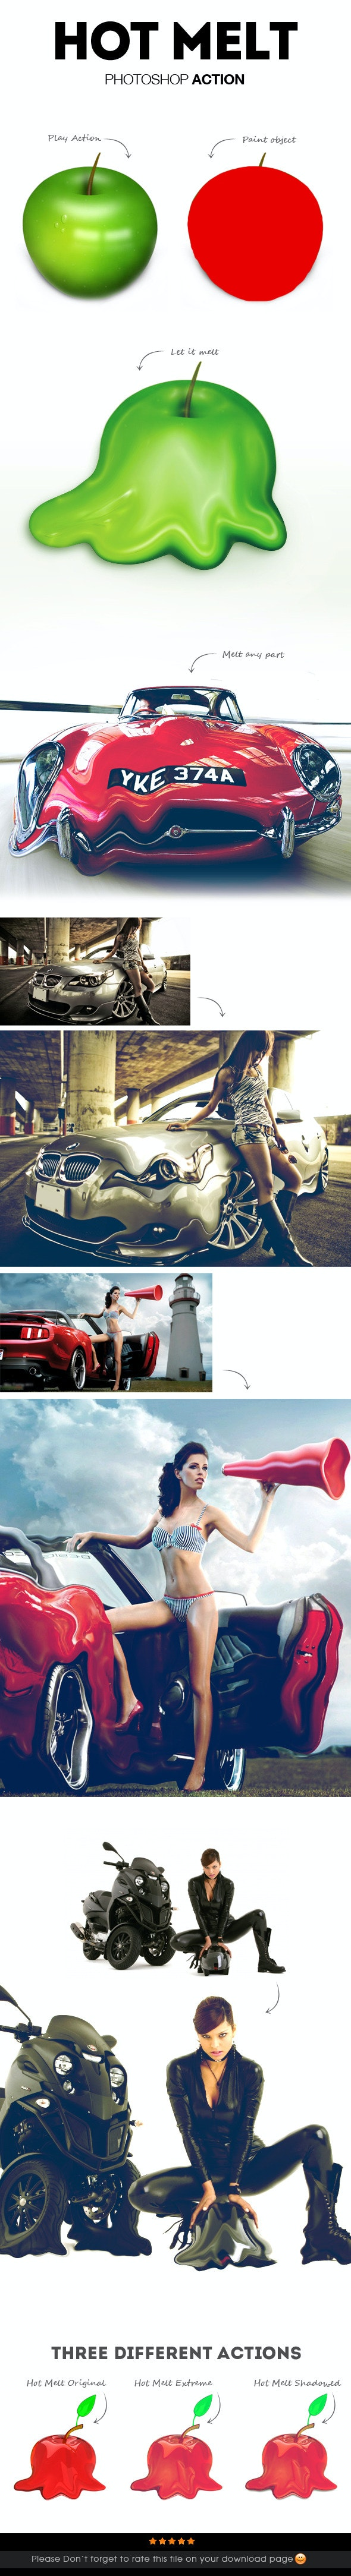 Hot Melt Photoshop Action - Photo Effects Actions